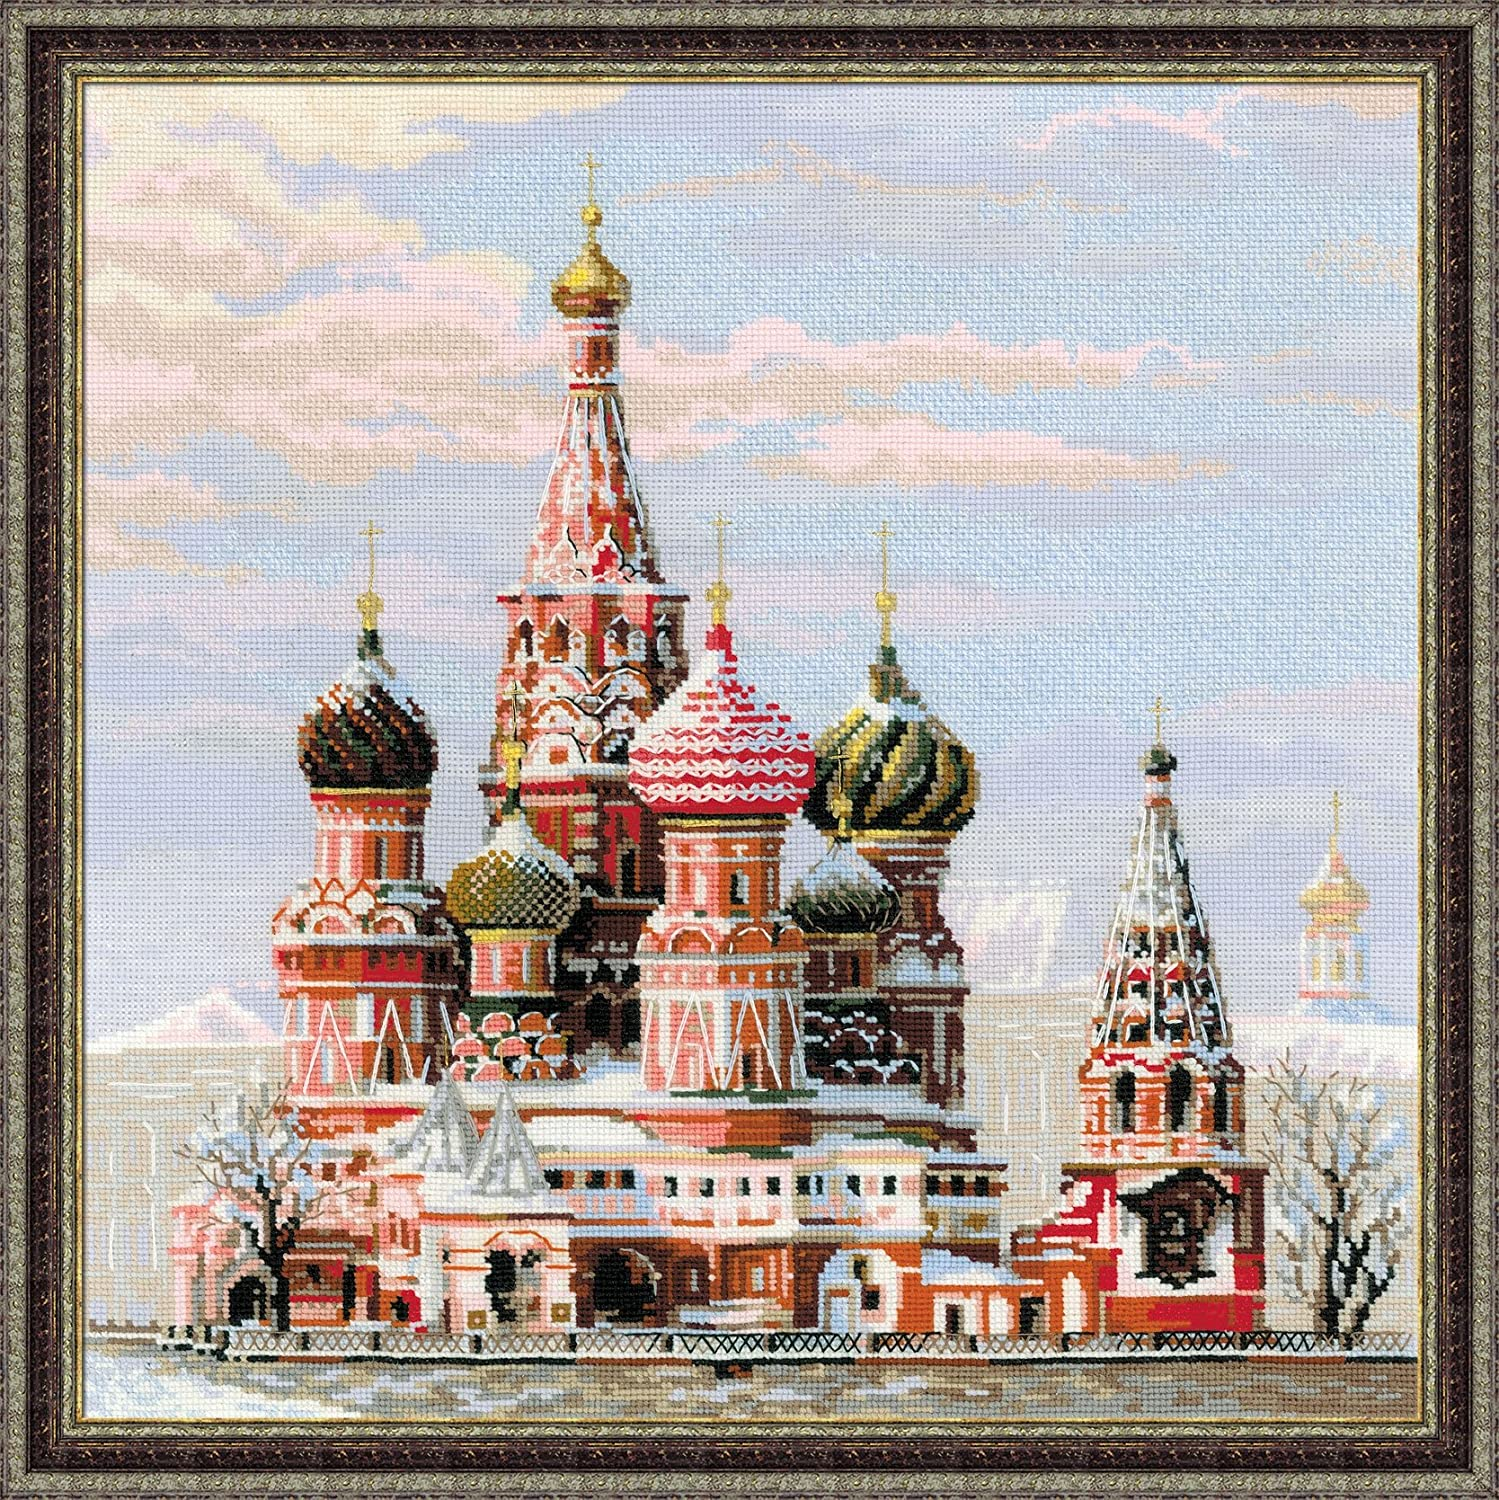 13.5 x 14.5 Thea Gouverneur 18 Count St Basils Cathedral Moscow on Aida Counted Cross Stitch Ki